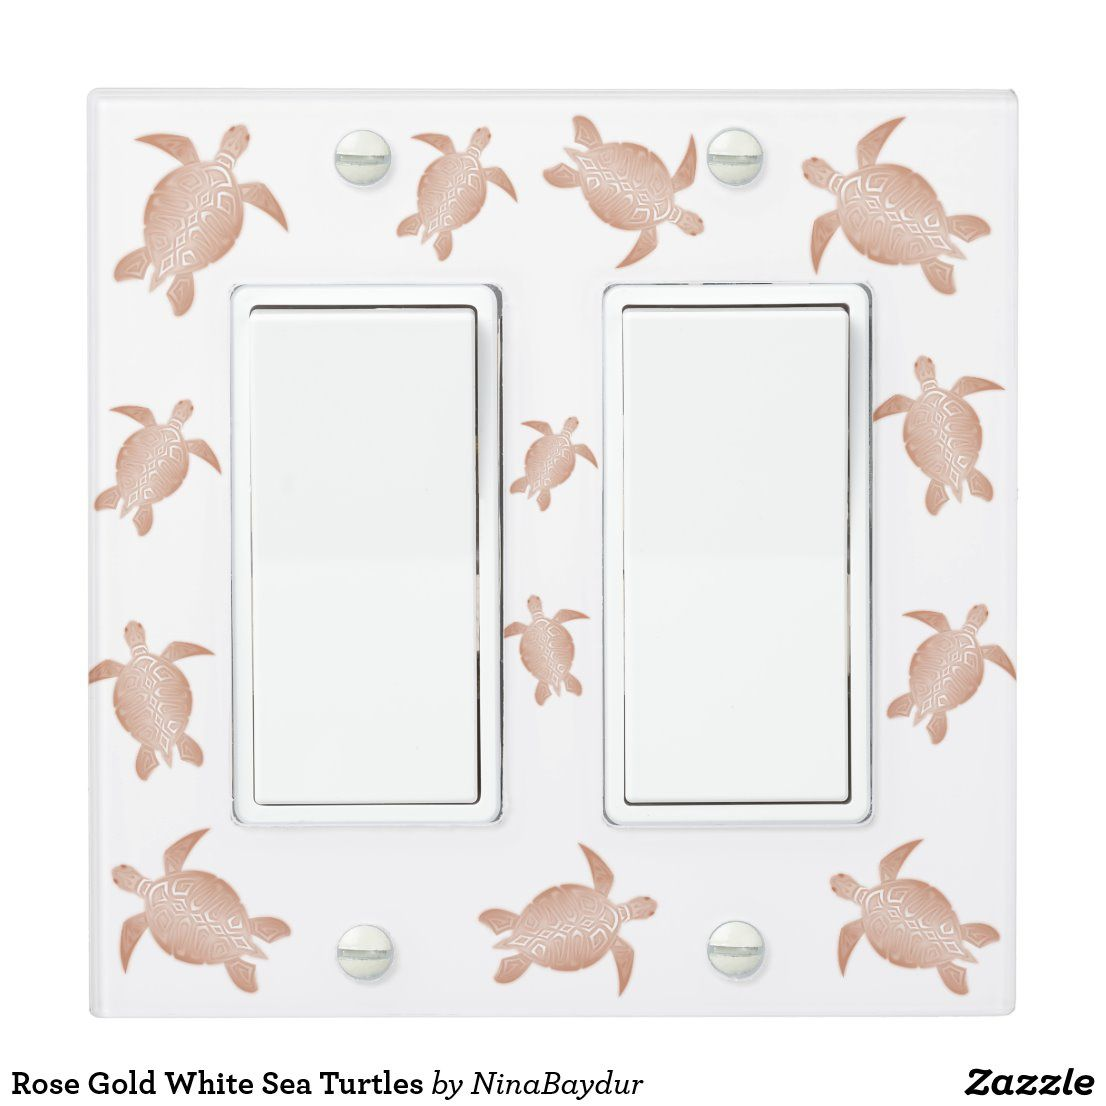 Rose Gold White Sea Turtles Light Switch Cover In 2020 Light Switch Covers White Rose Gold Sea Turtle Decor